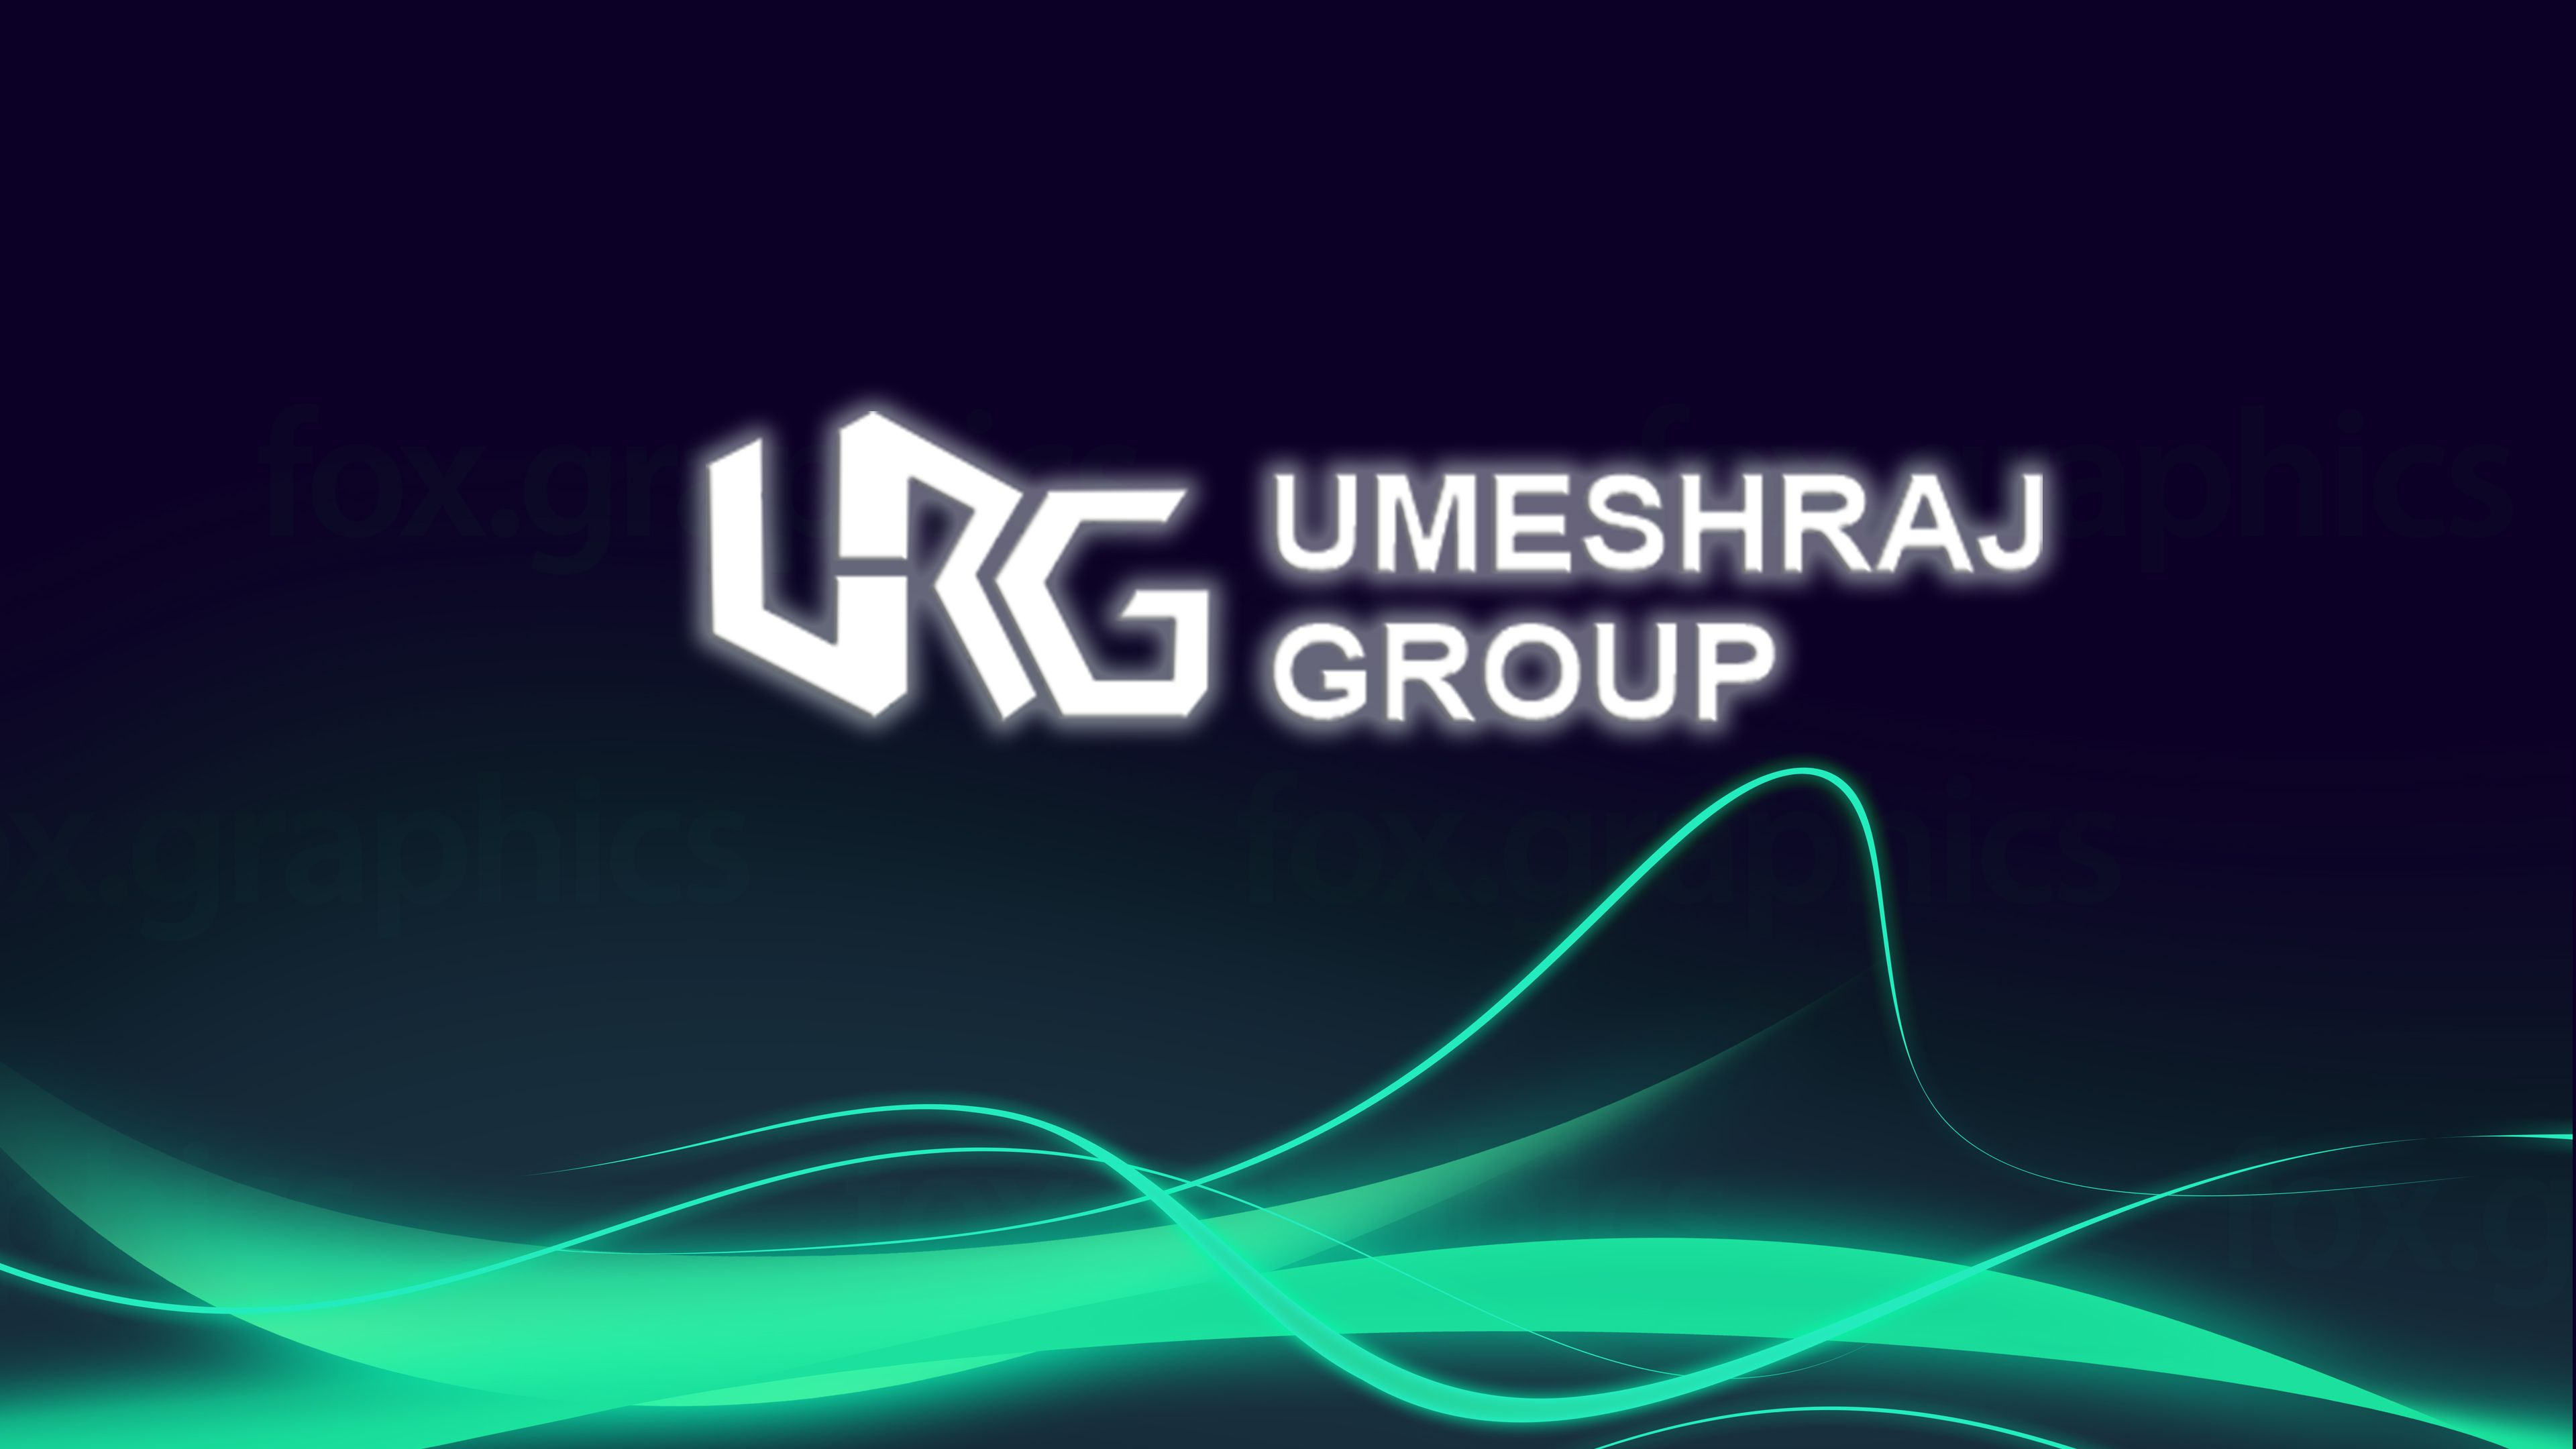 URG groups is a vital range of service providers offering